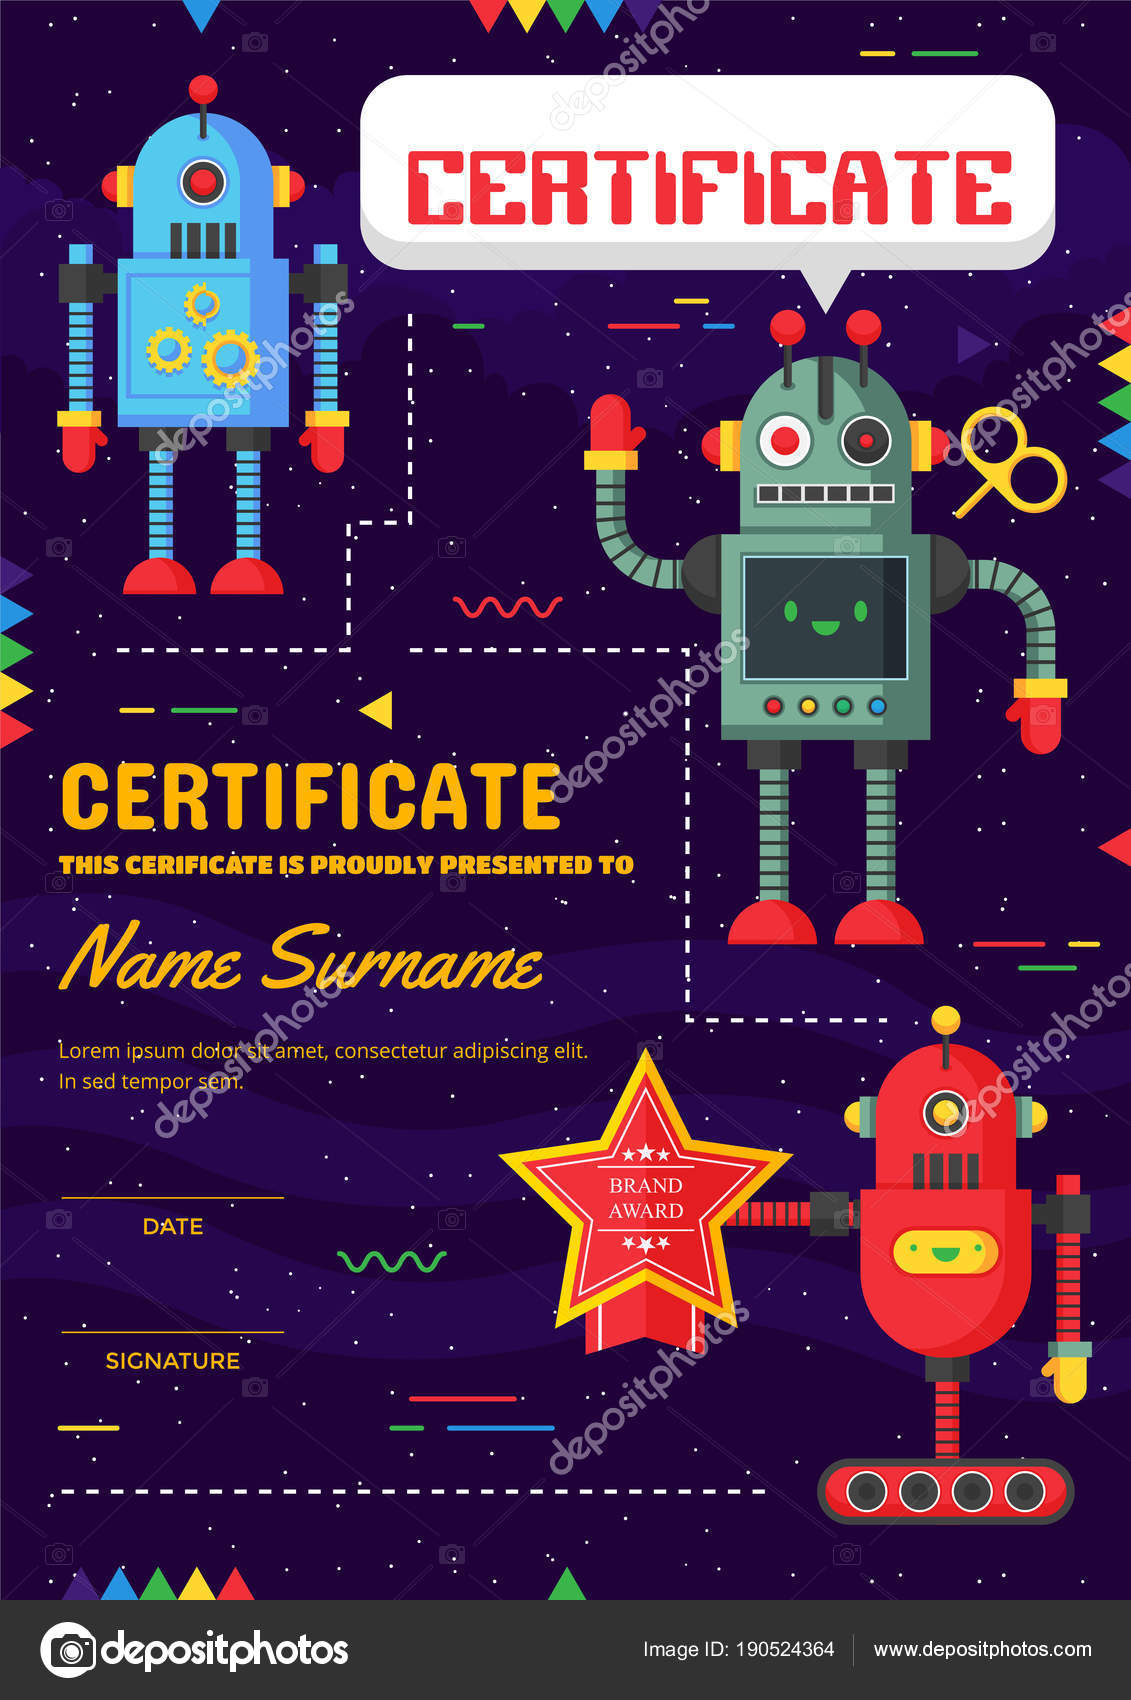 Cute children robotic class certificate achievement appreciation cute children robotic class certificate achievement appreciation template stock vector yelopaper Choice Image